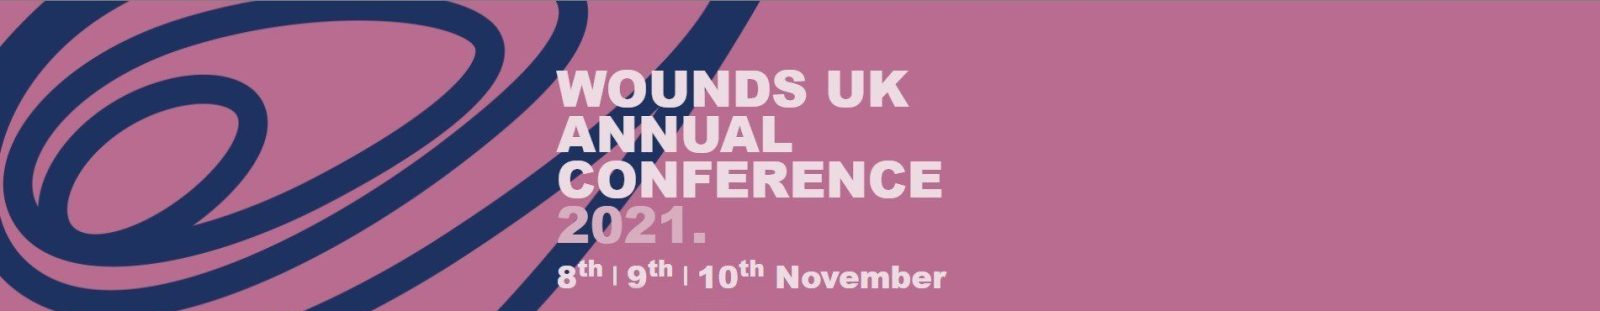 Helping Hand Pressure Care devision of the Helping Hand Company will be at Wounds UK 2021